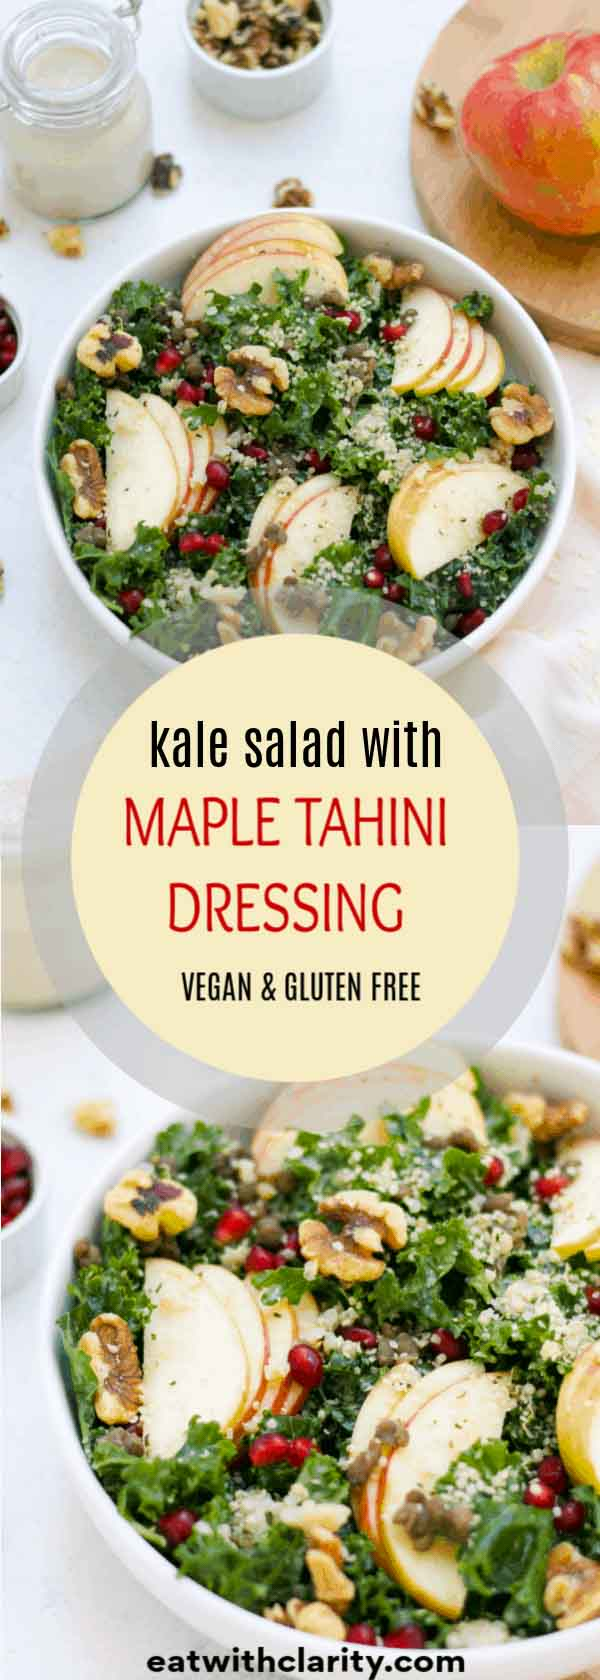 Save this maple tahini dressing recipe to your pinterest boards!